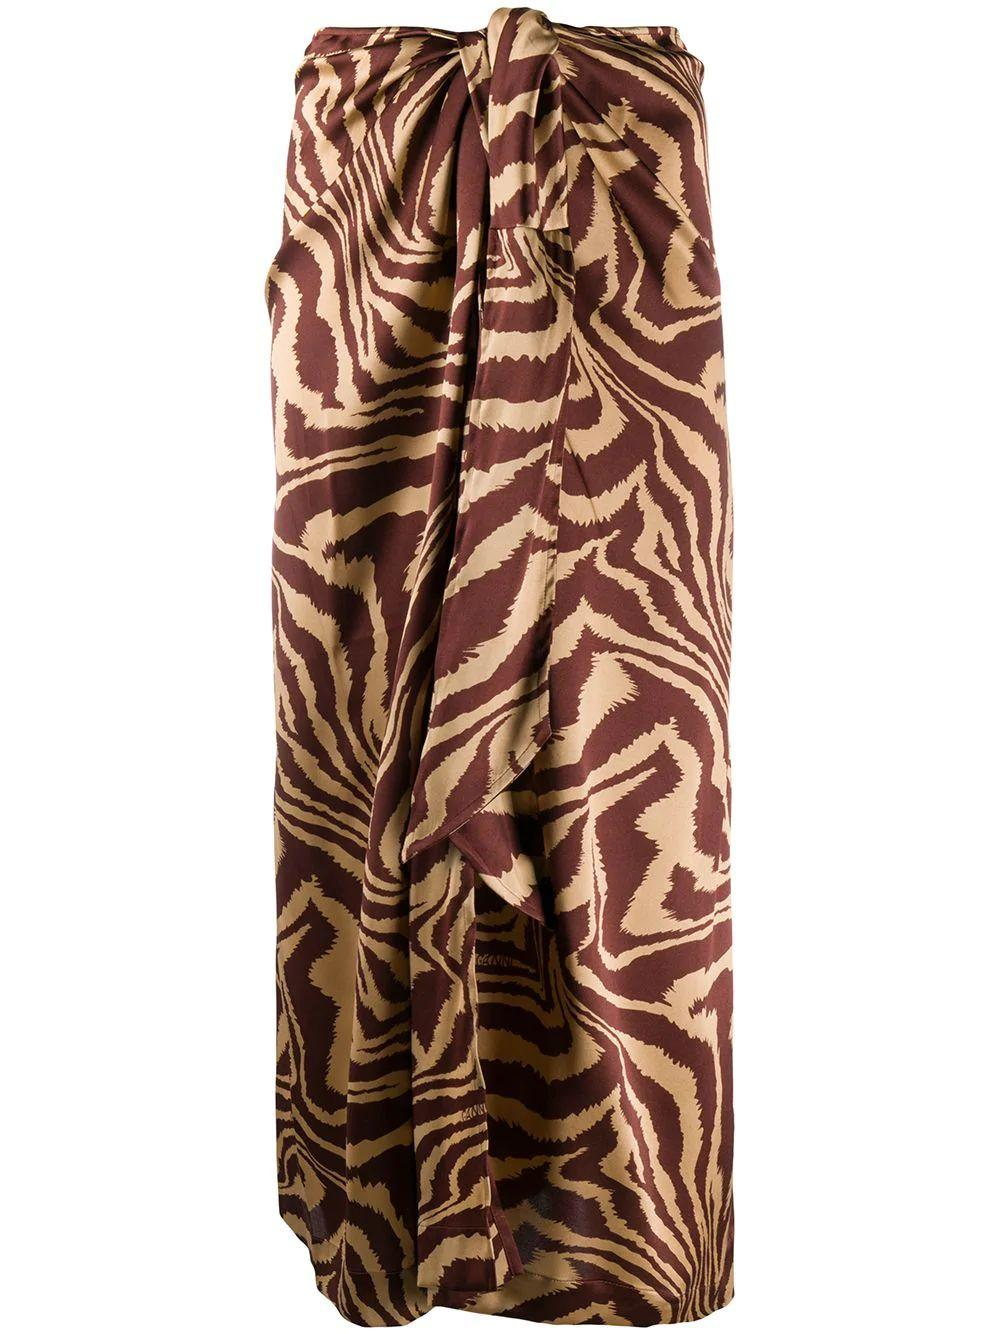 Silk Stretch Satin Zebra Midi Skirt Item # F4657